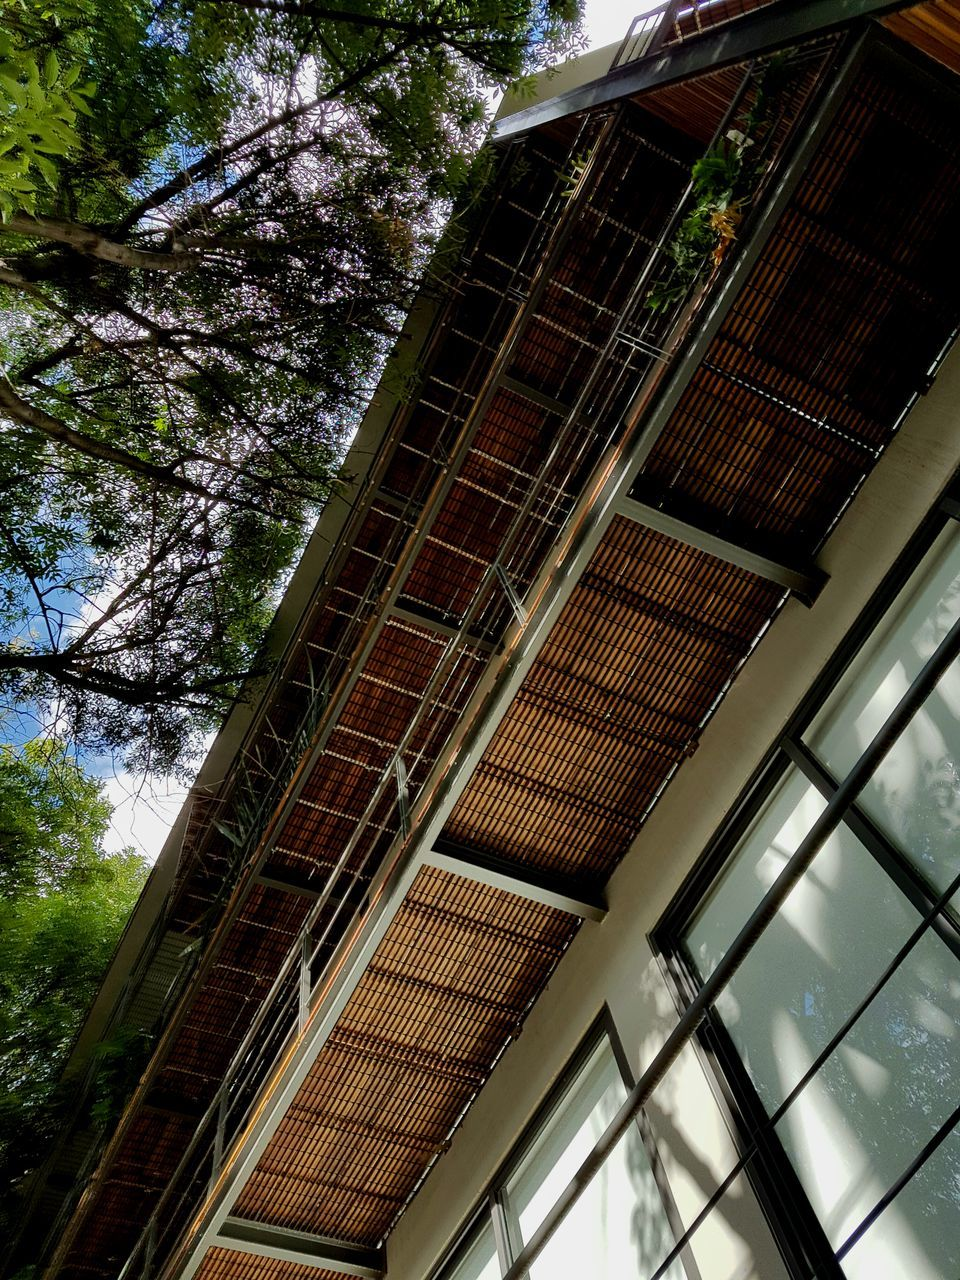 low angle view, architecture, tree, built structure, modern, window, reflection, building exterior, no people, growth, day, outdoors, sky